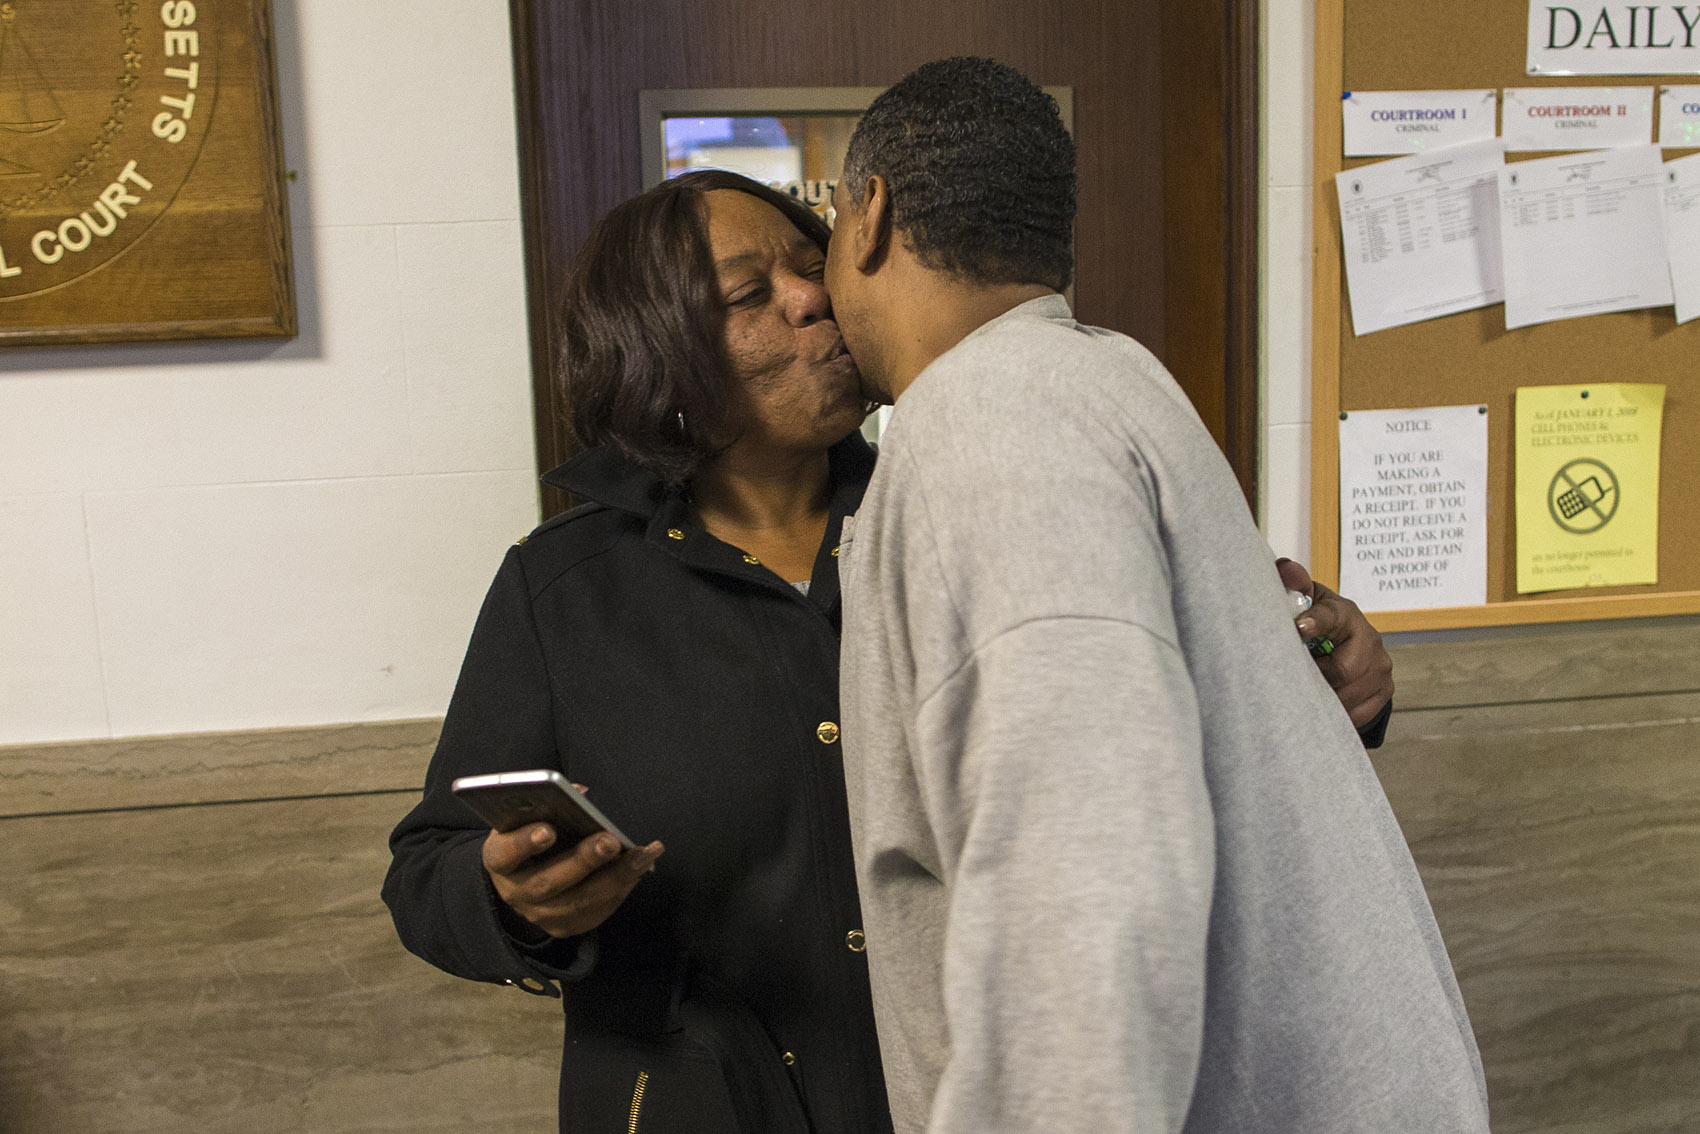 Darrell Jones embraces and kisses his sister Classie Howard after he was released on bail. (Jesse Costa/WBUR)